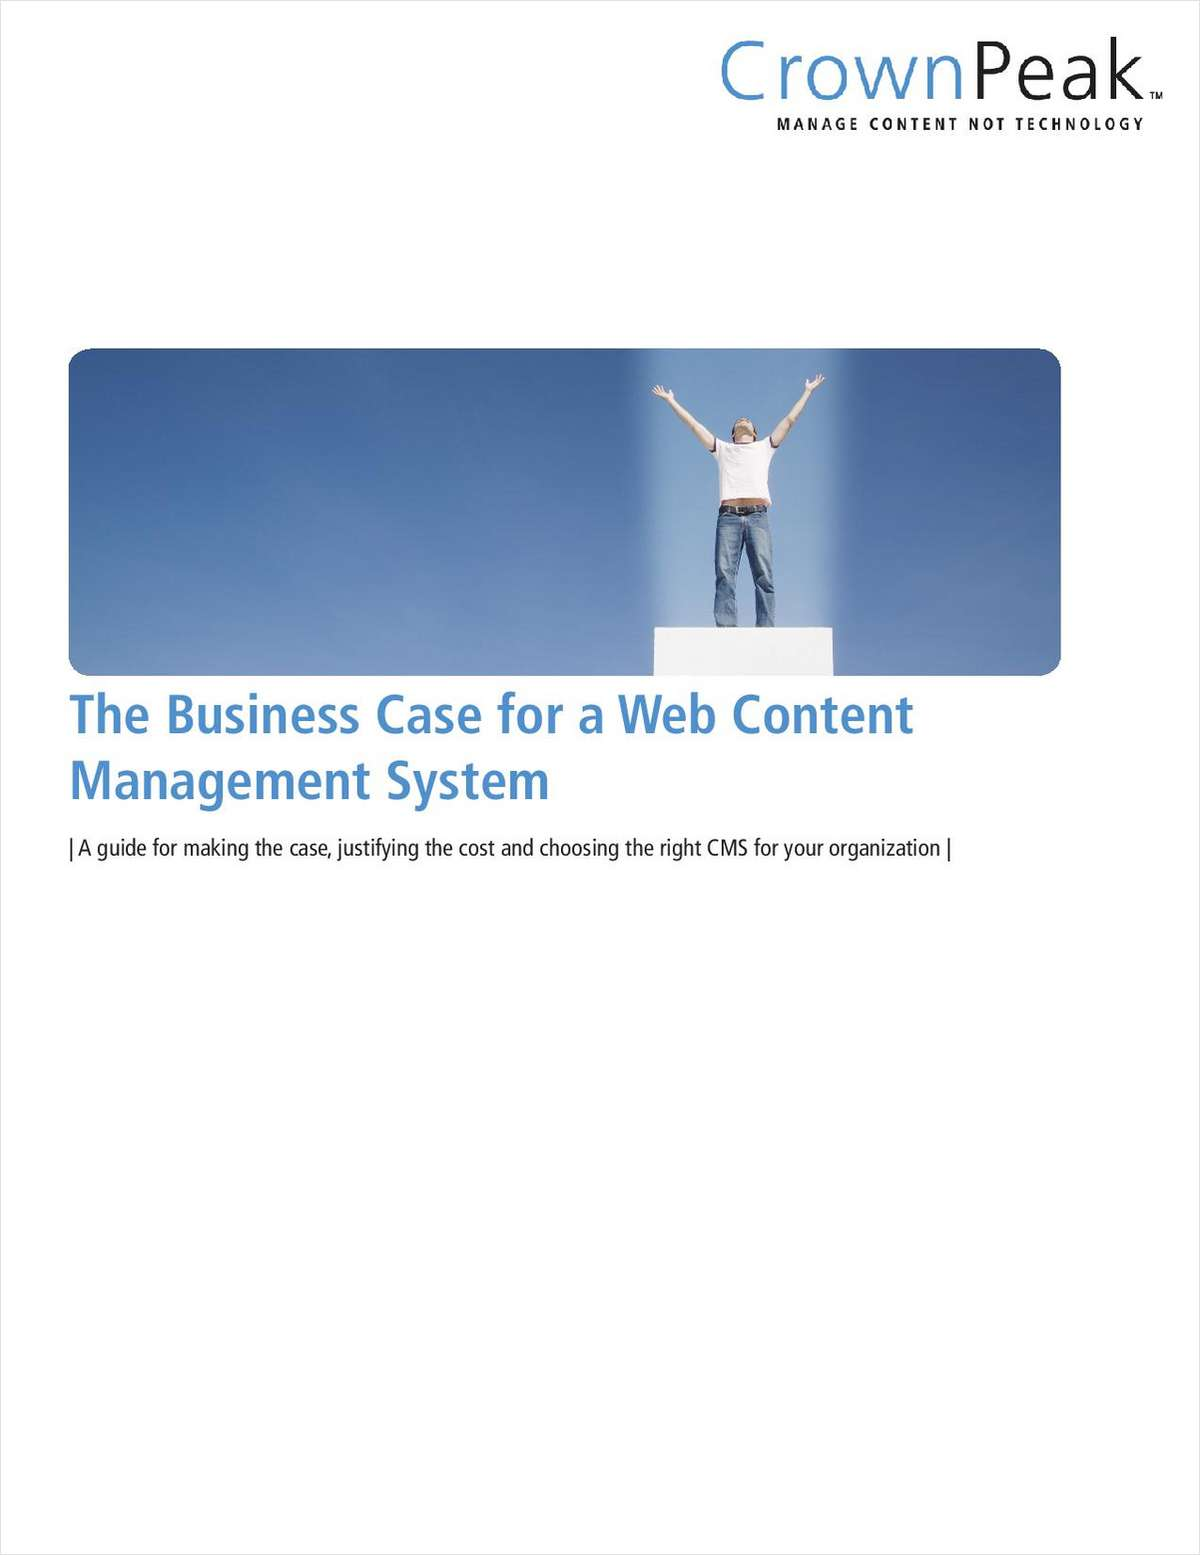 The Business Case for a Web Content Management System